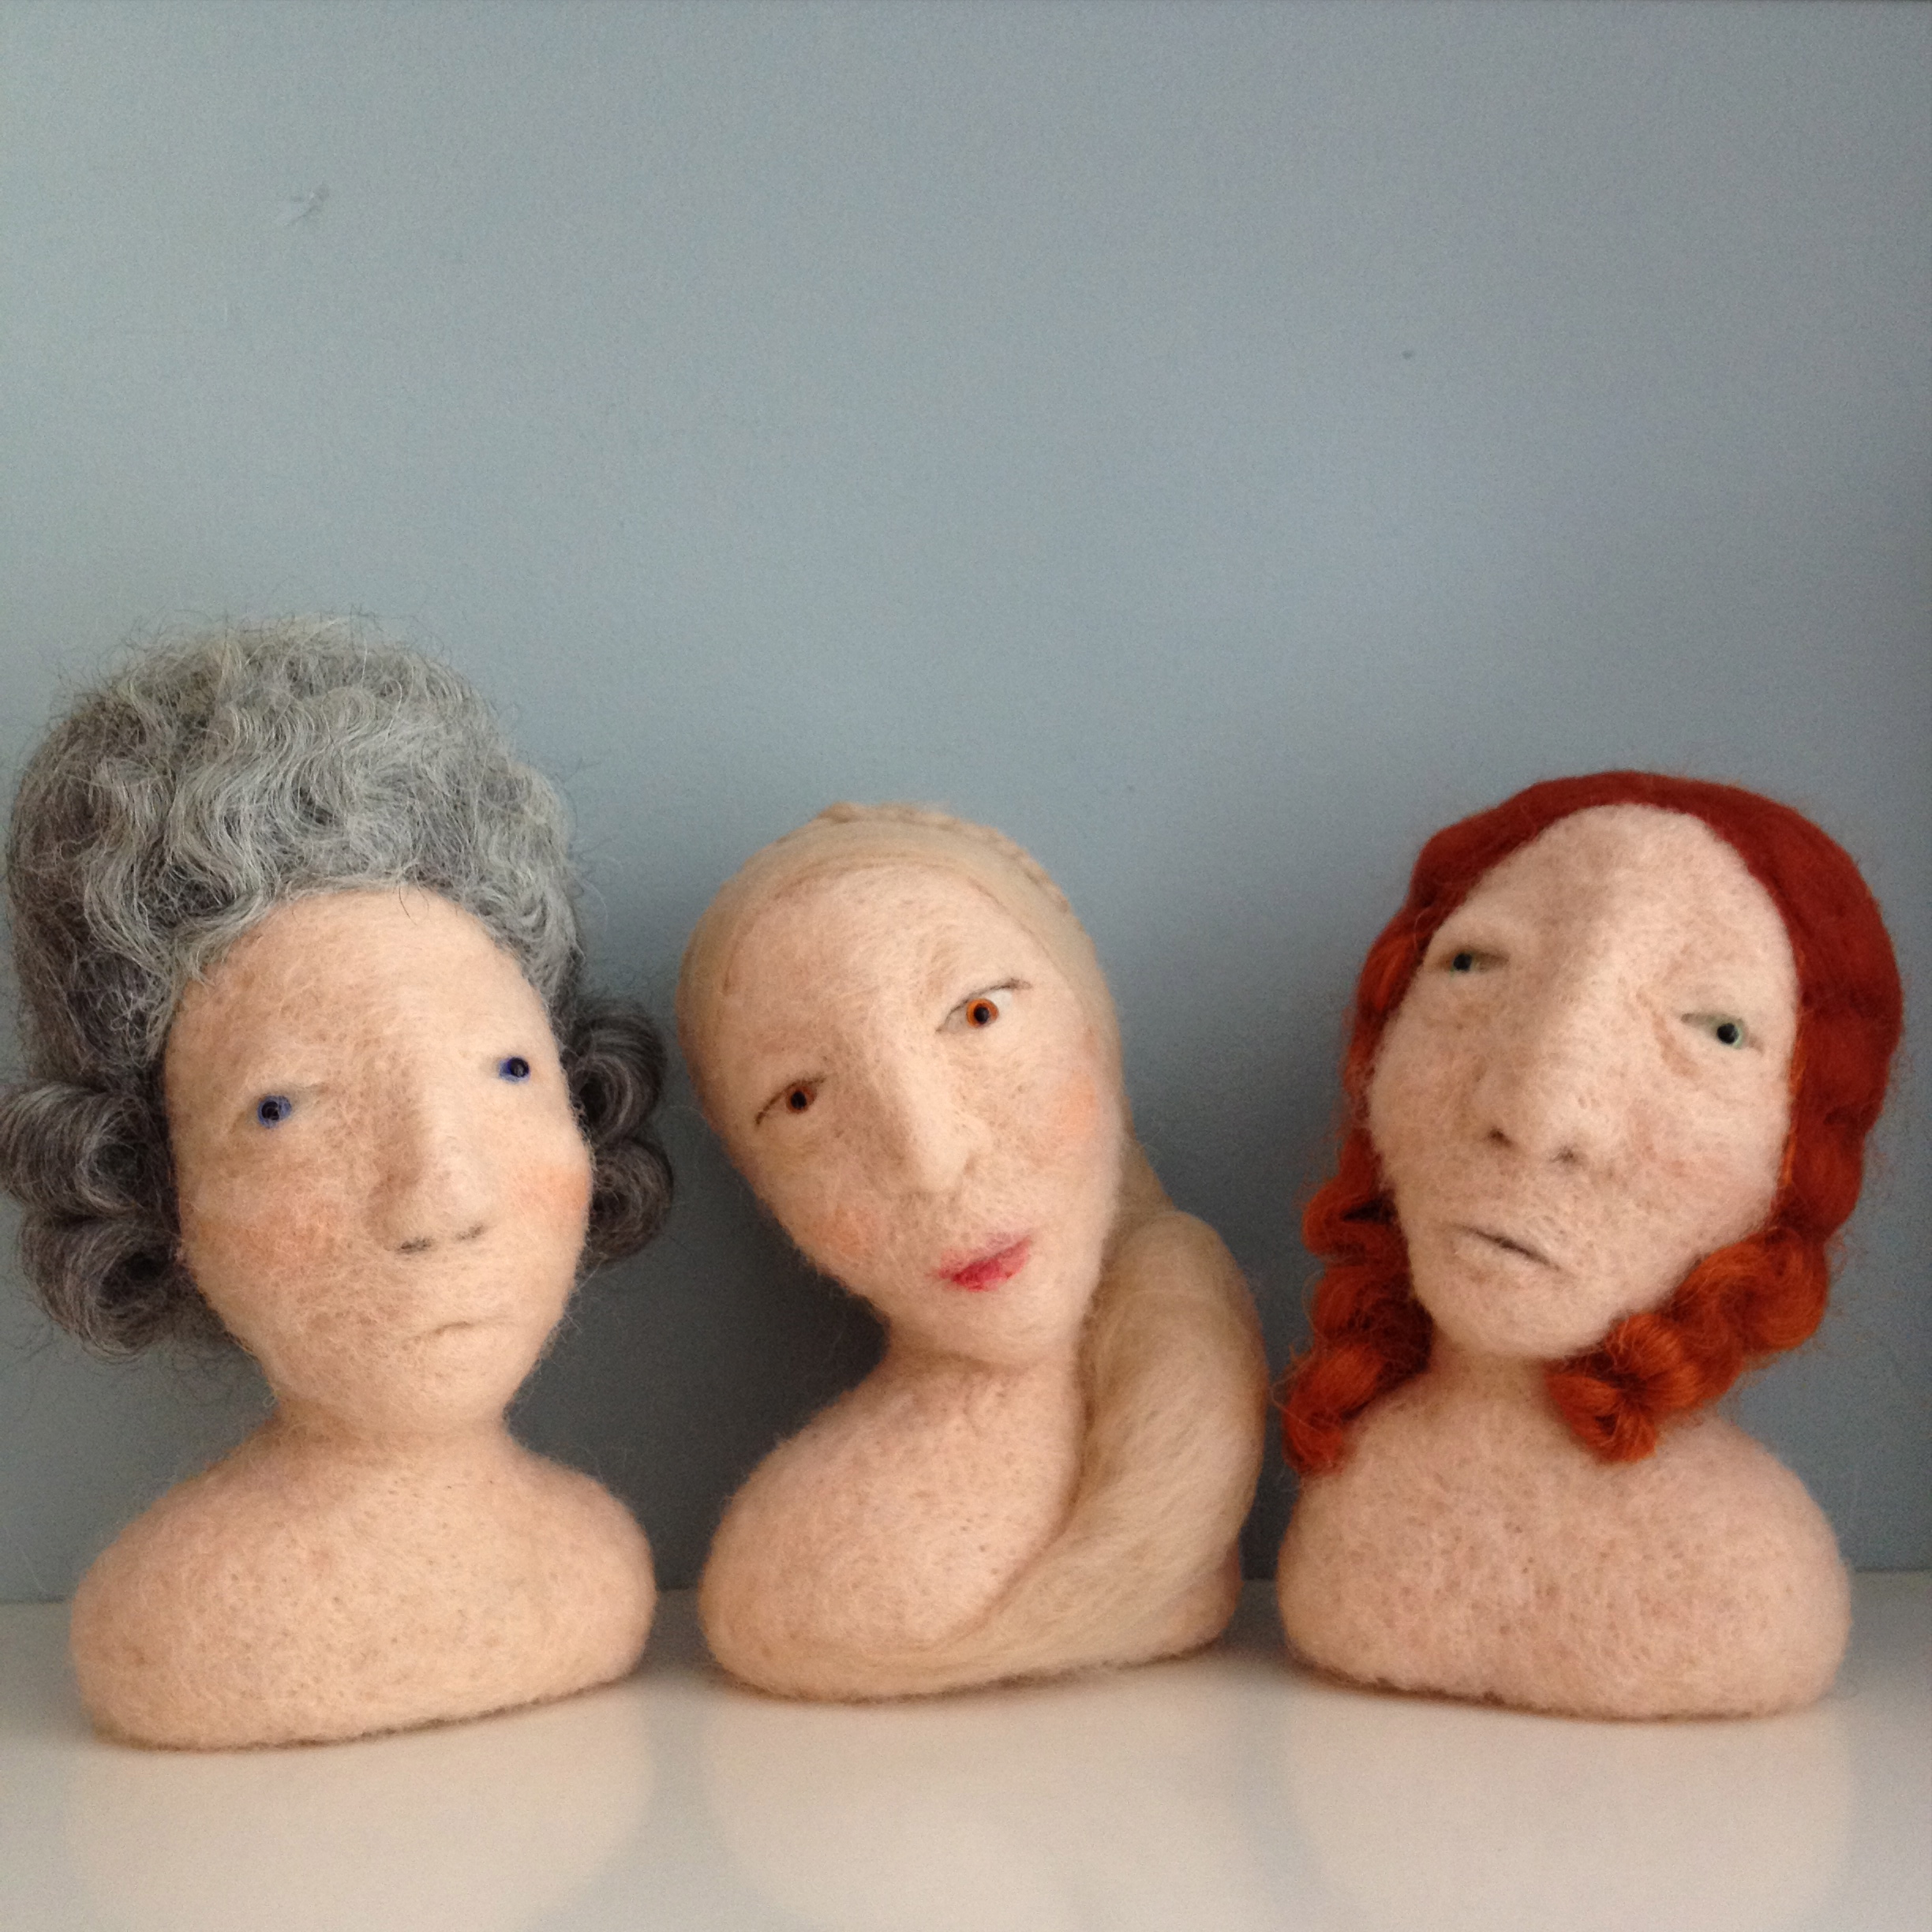 Historical doll series 2014